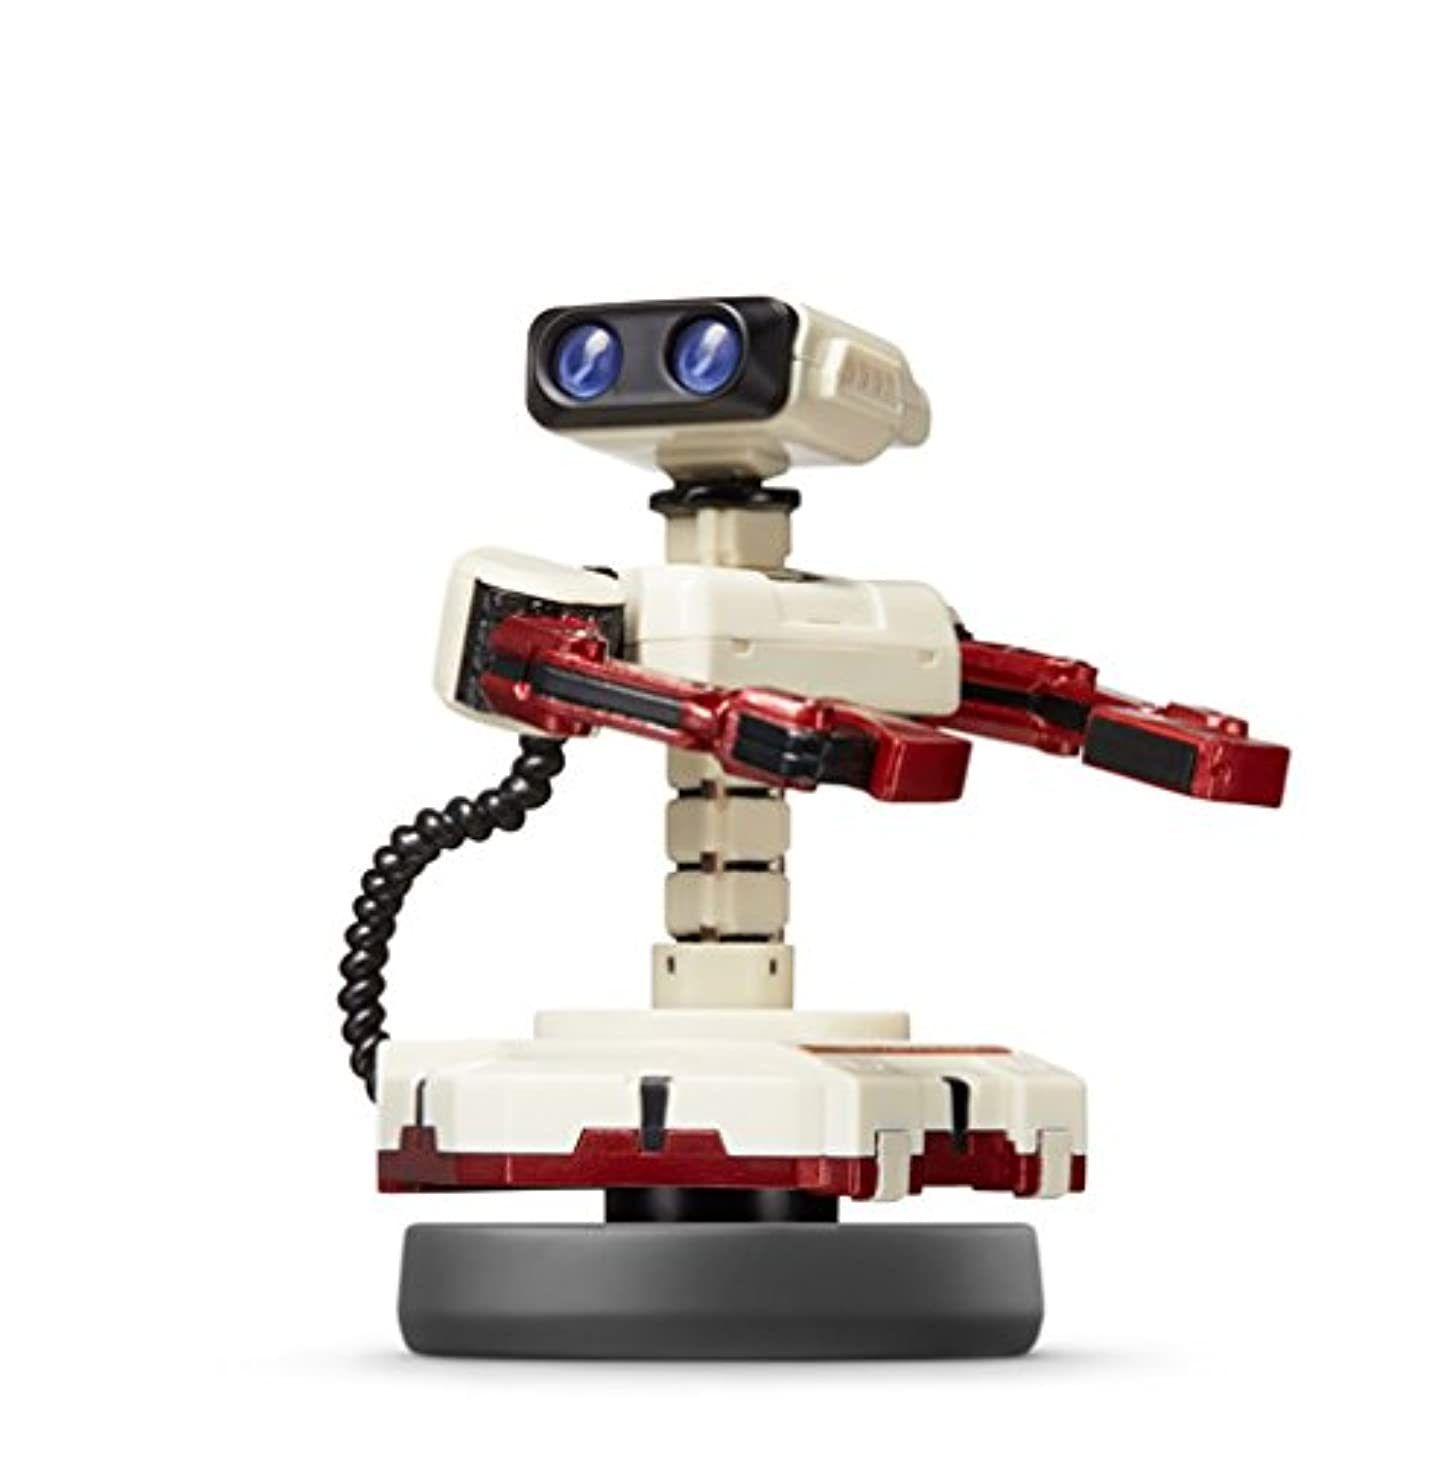 R.O.B. Famicom Colors amiibo (Super Smash Bros Series)